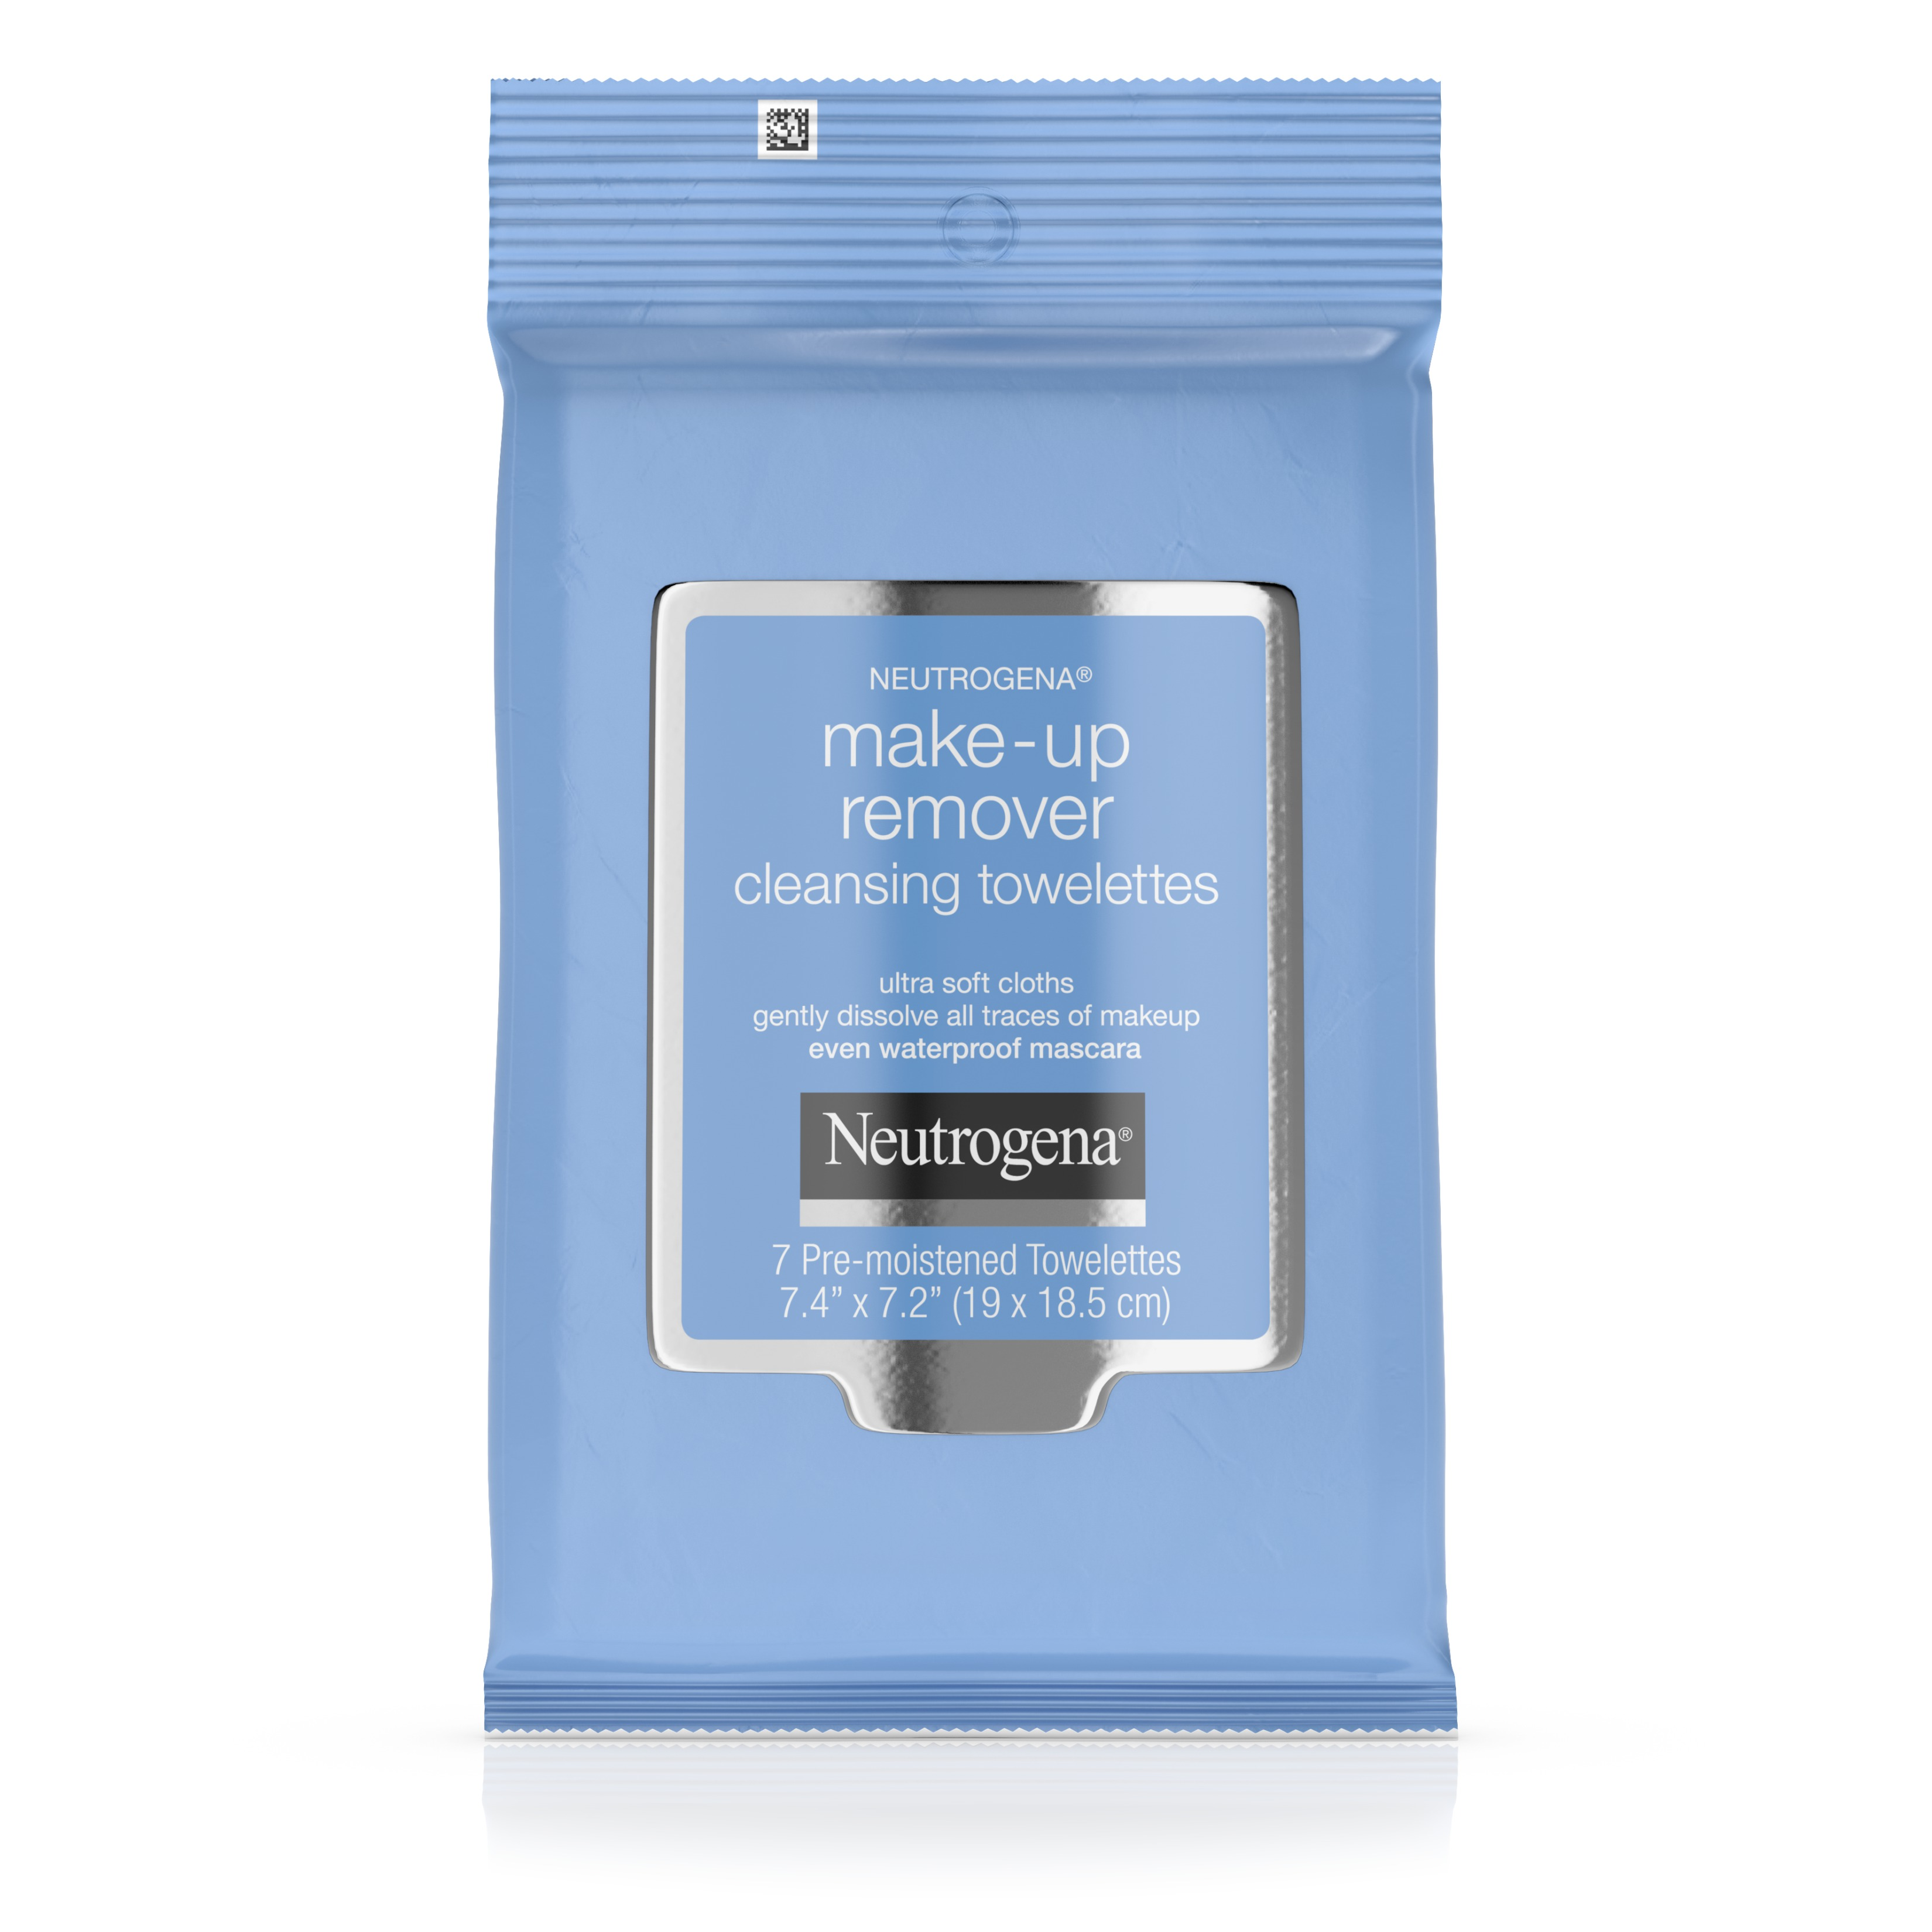 (4 Pack) Neutrogena Cleansing Towellettes Make-Up Remover, 7 Ct